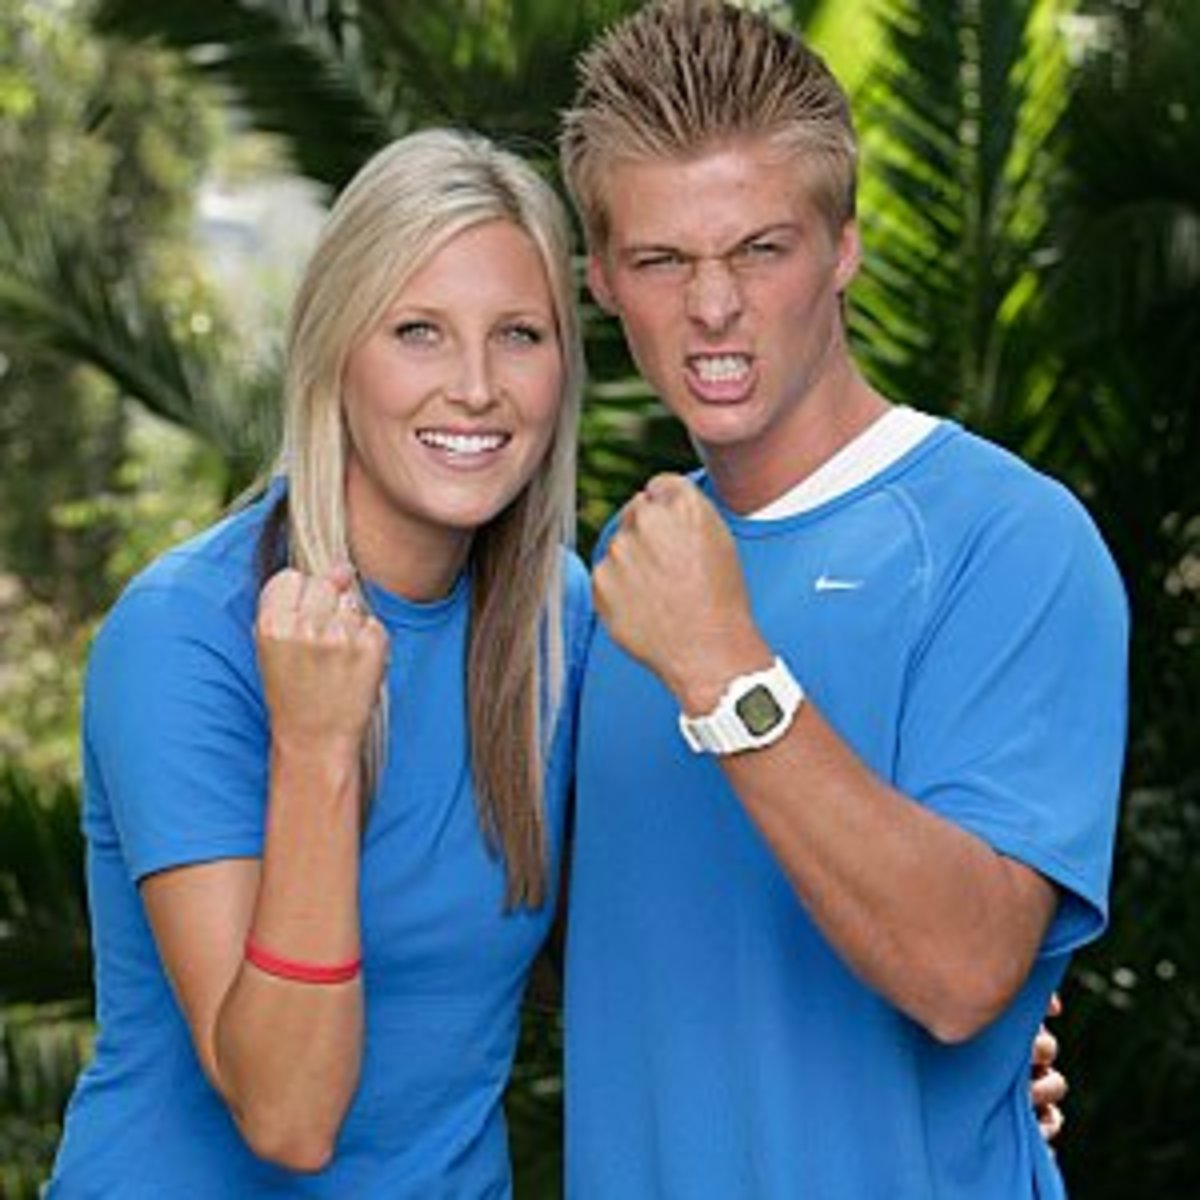 Meghan & Cheyne from The Amazing Race